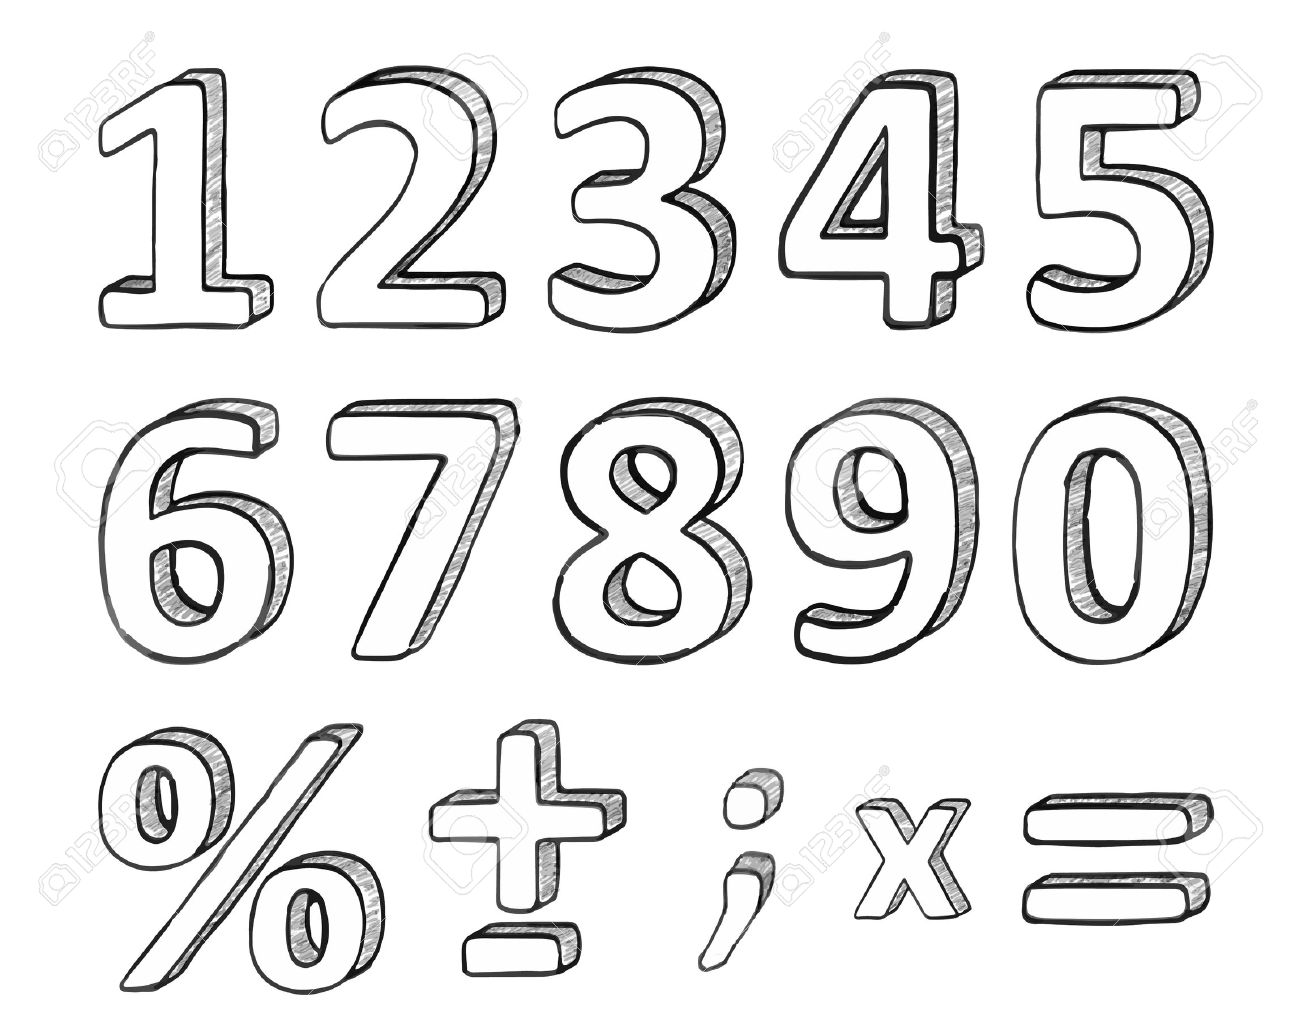 Hand Drawn Numbers and Basic Math Signs, Vector Illustration - 33357311